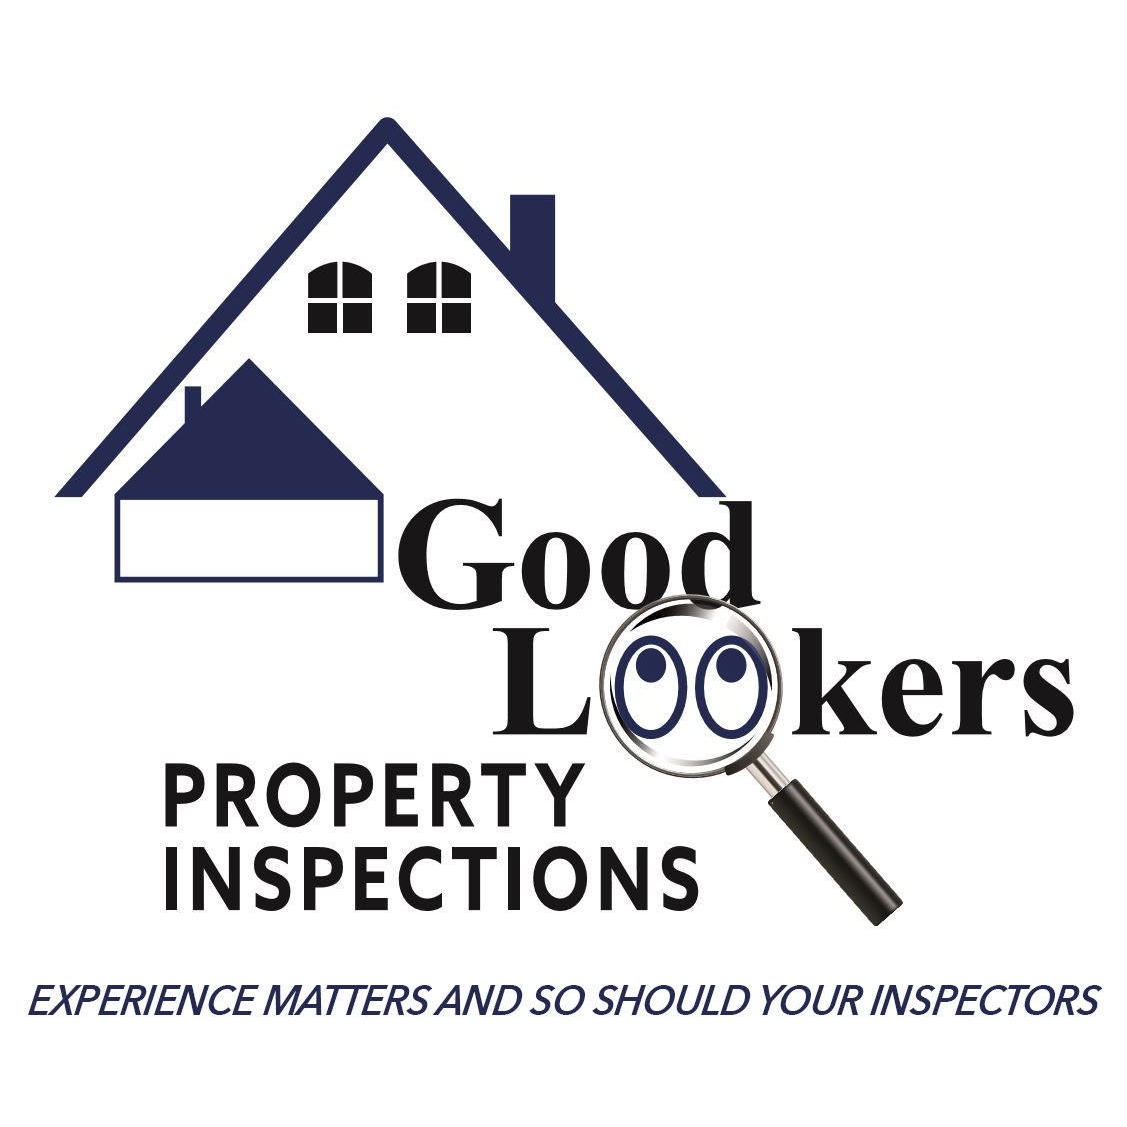 Good Lookers Property Inspections